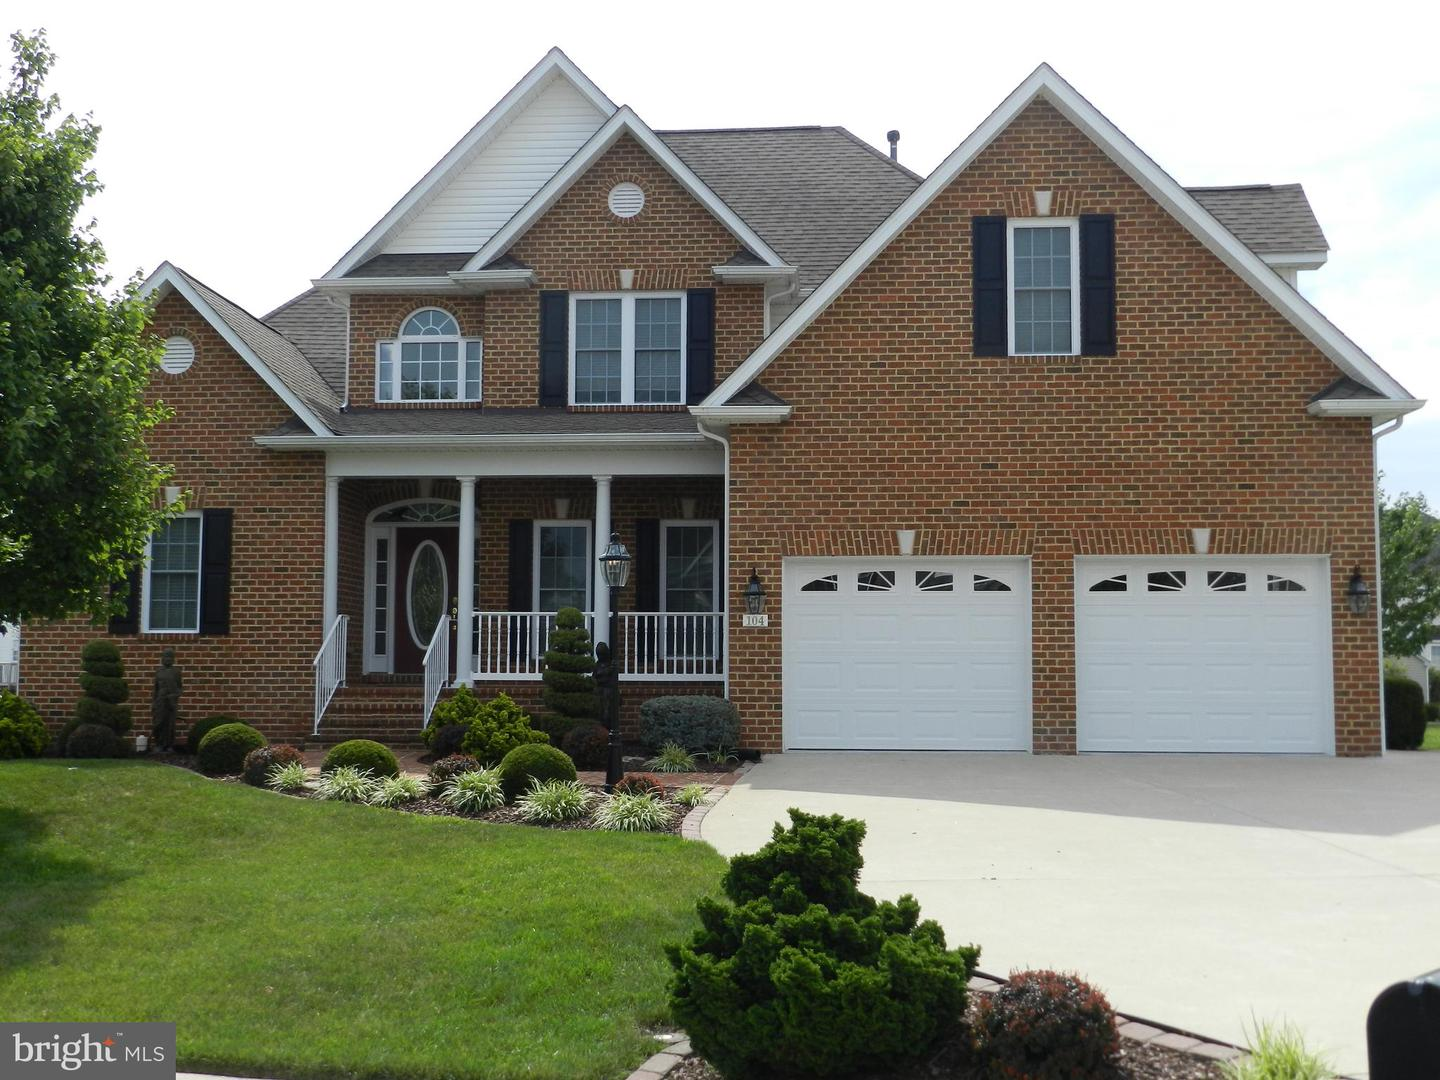 Single Family for Sale at 104 Cabernet Ct 104 Cabernet Ct Stephens City, Virginia 22655 United States